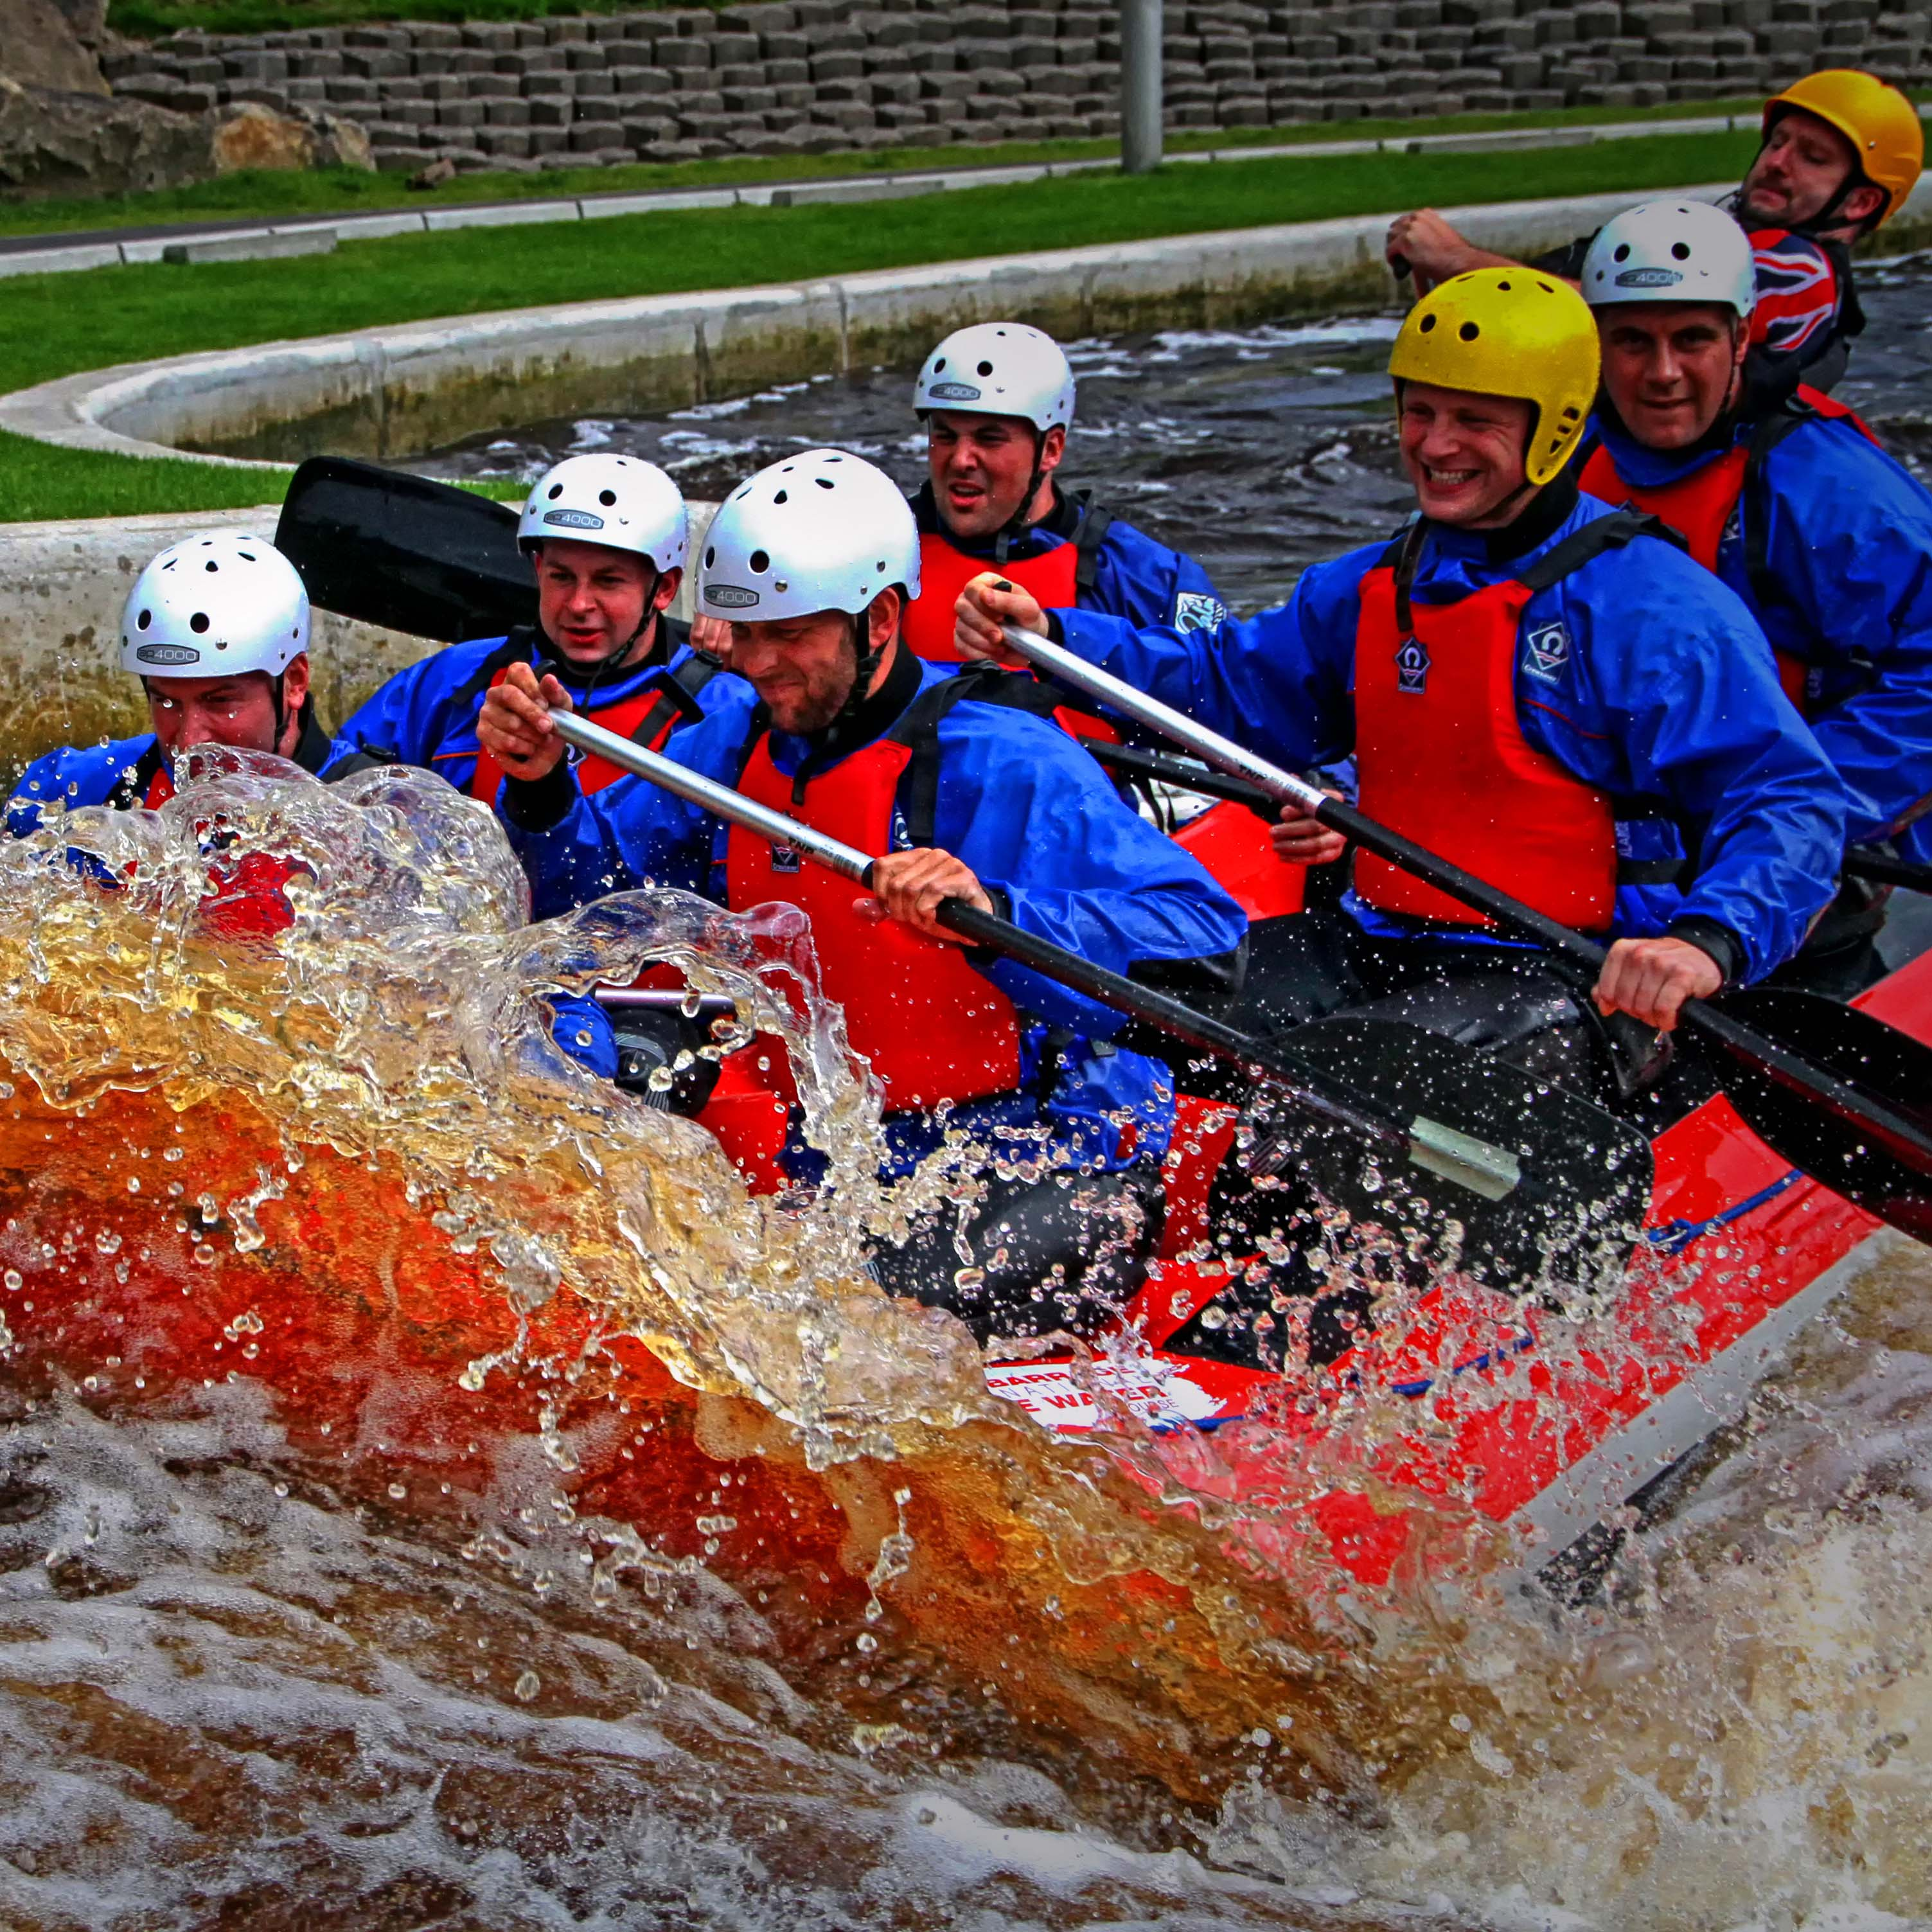 Rafting at tees barrage